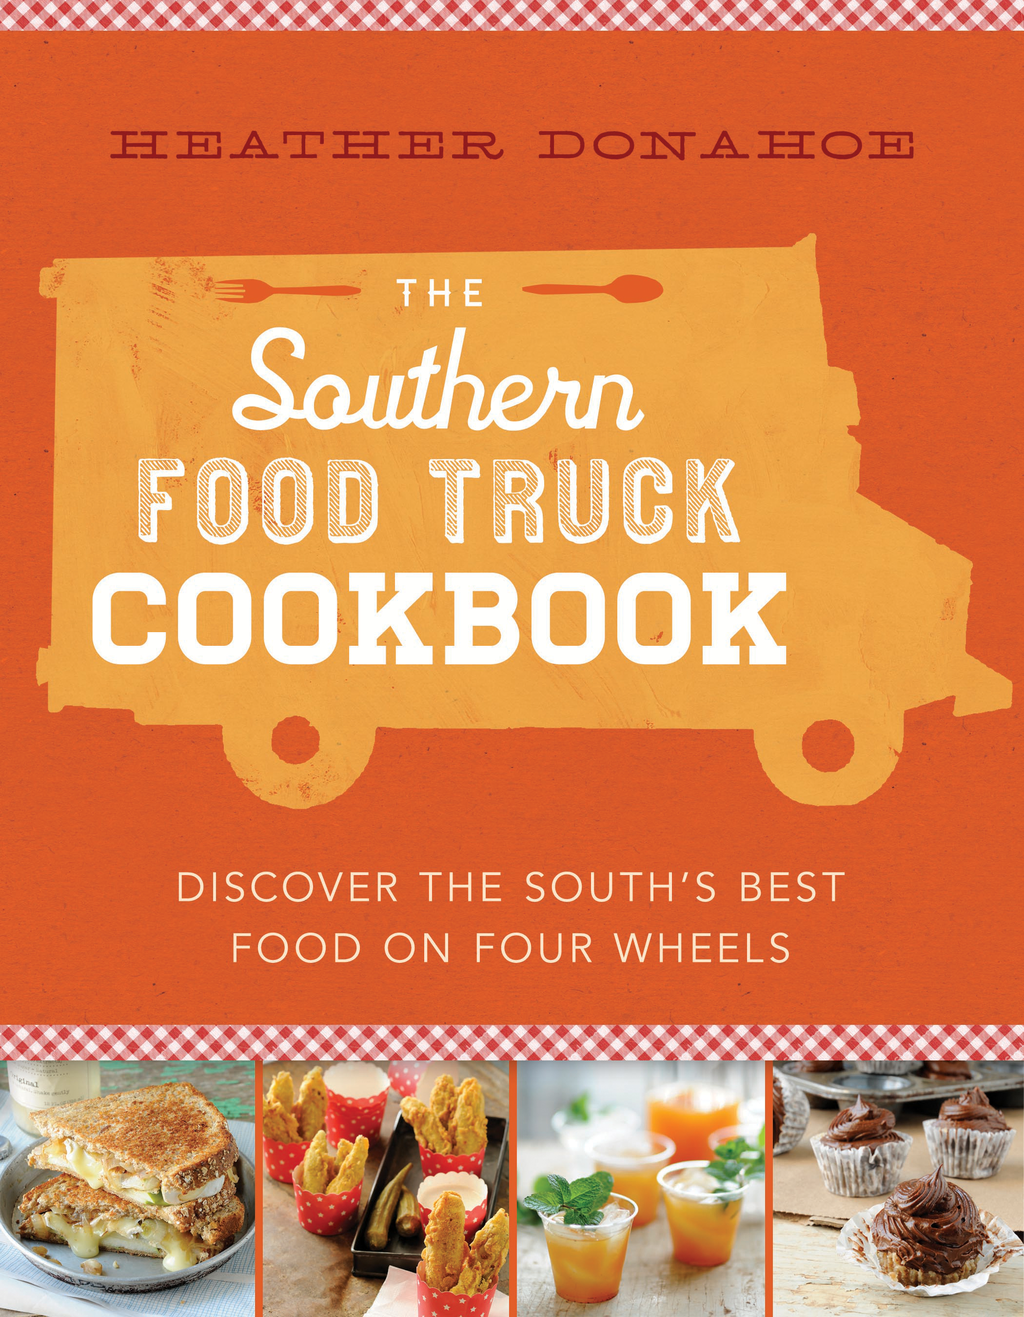 The Southern Food Truck Cookbook Discover the South's Best Food on Four Wheels